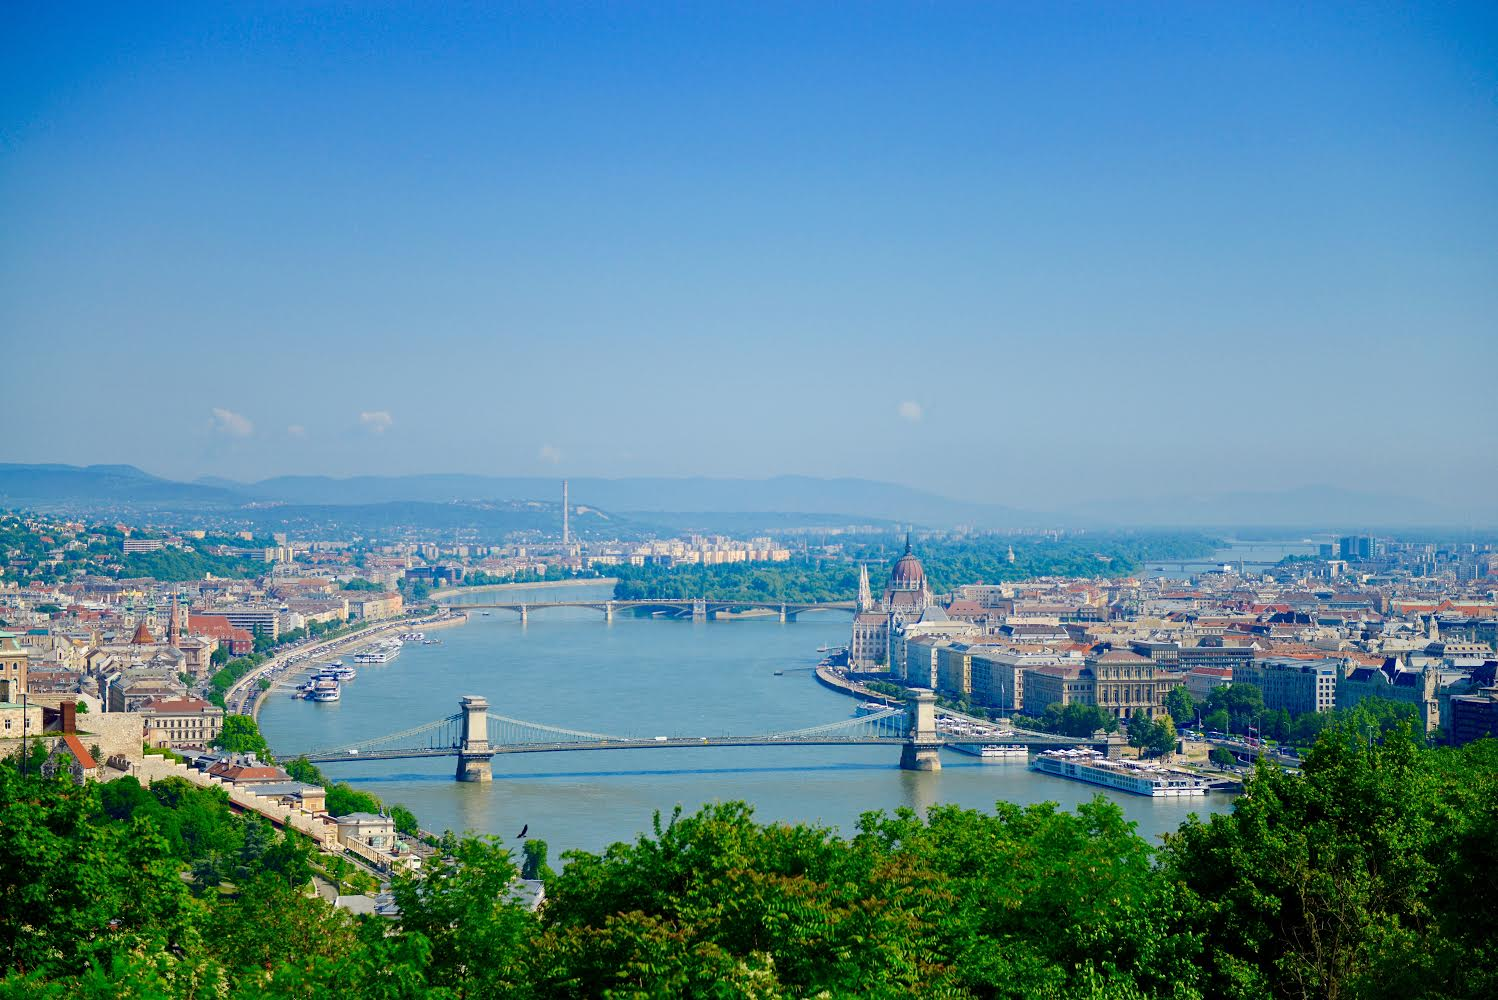 Buda on the left, Pest on the right.